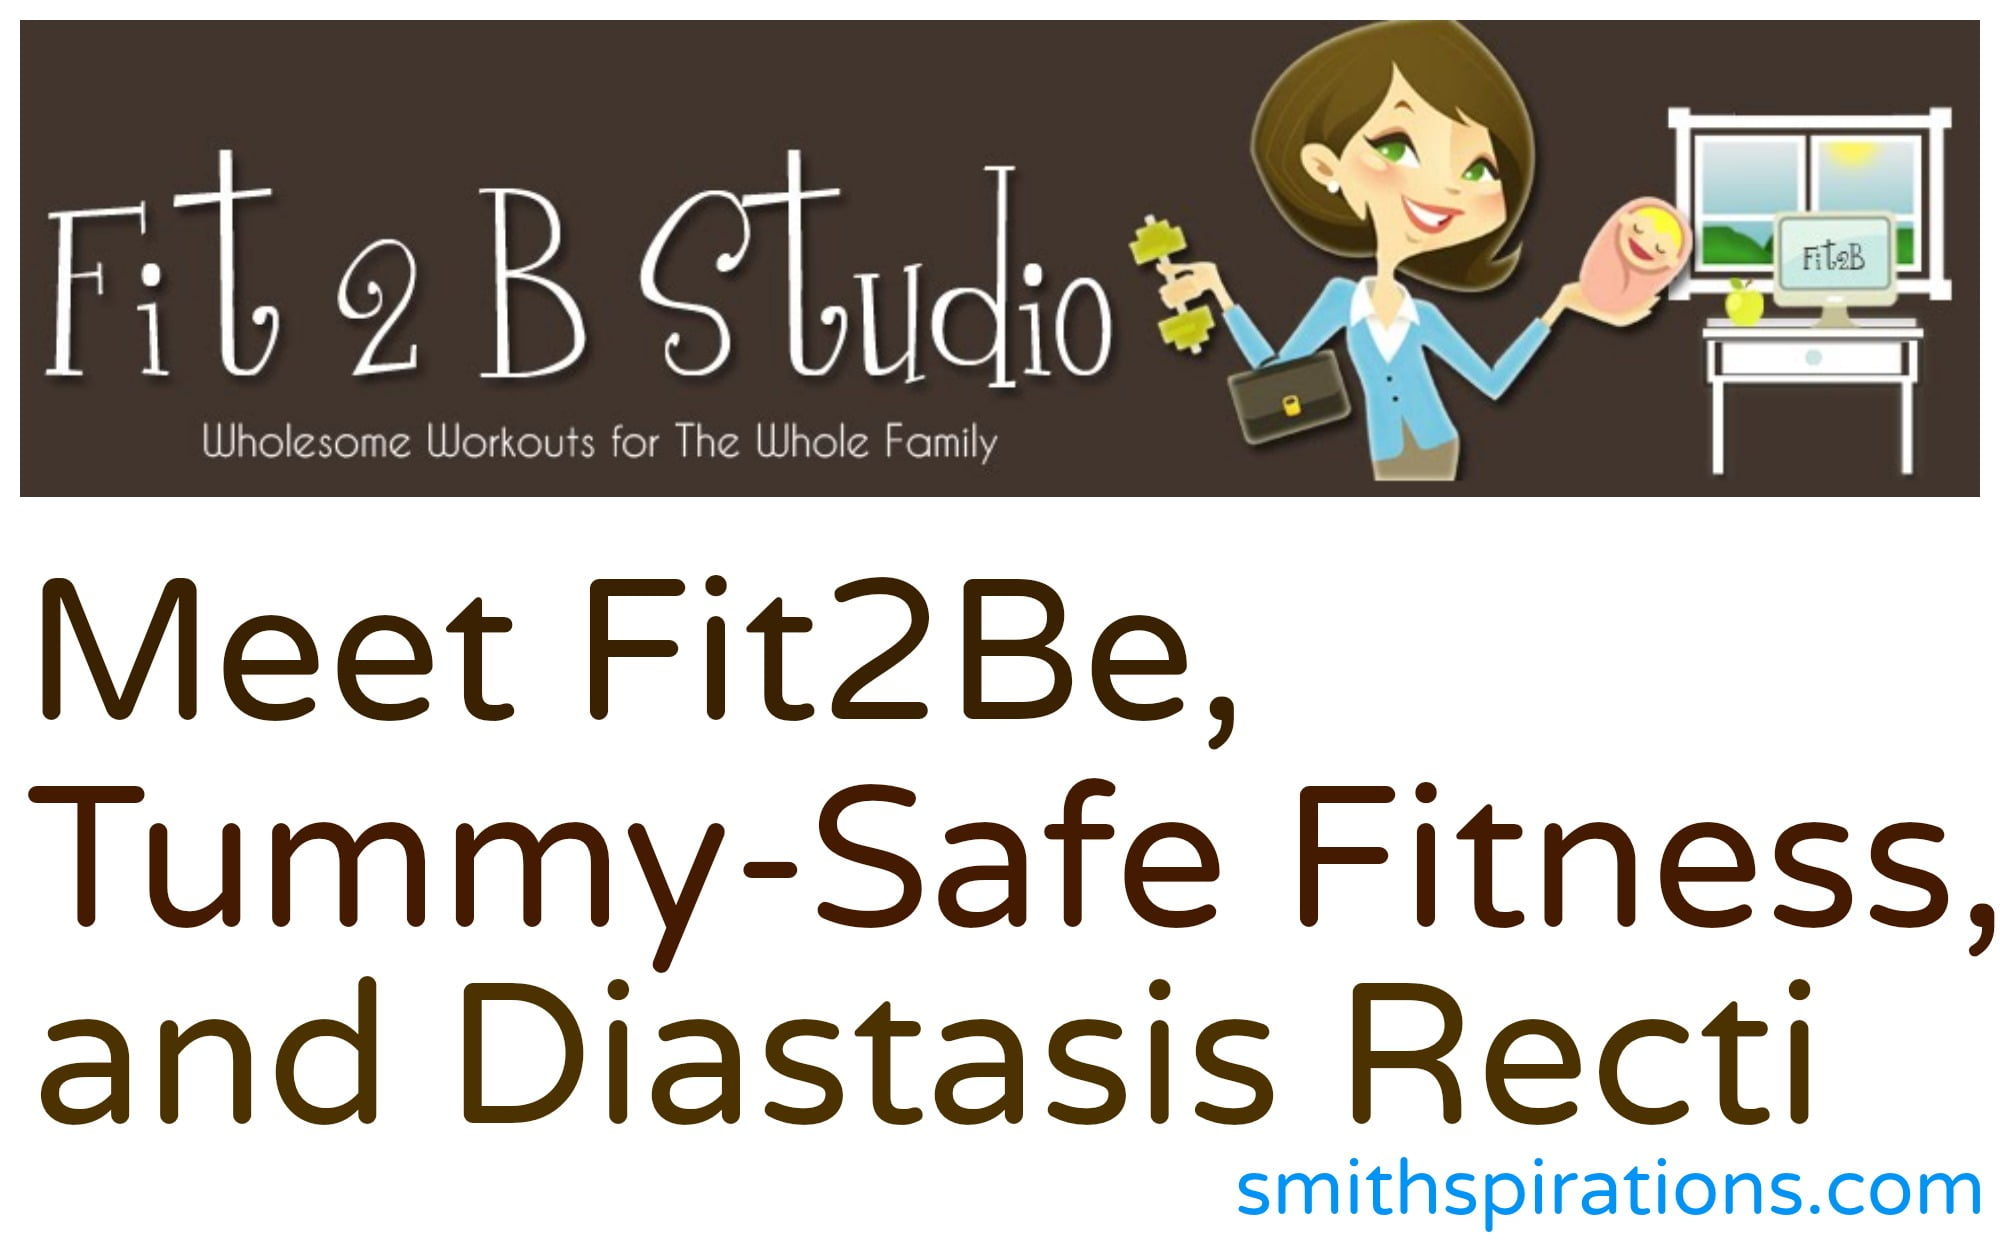 Meet fit2be tummy safe fitness and diastasis recti part 1 a meet fit2be tummy safe fitness and diastasis recti part 1 a better way to thrive fandeluxe Image collections